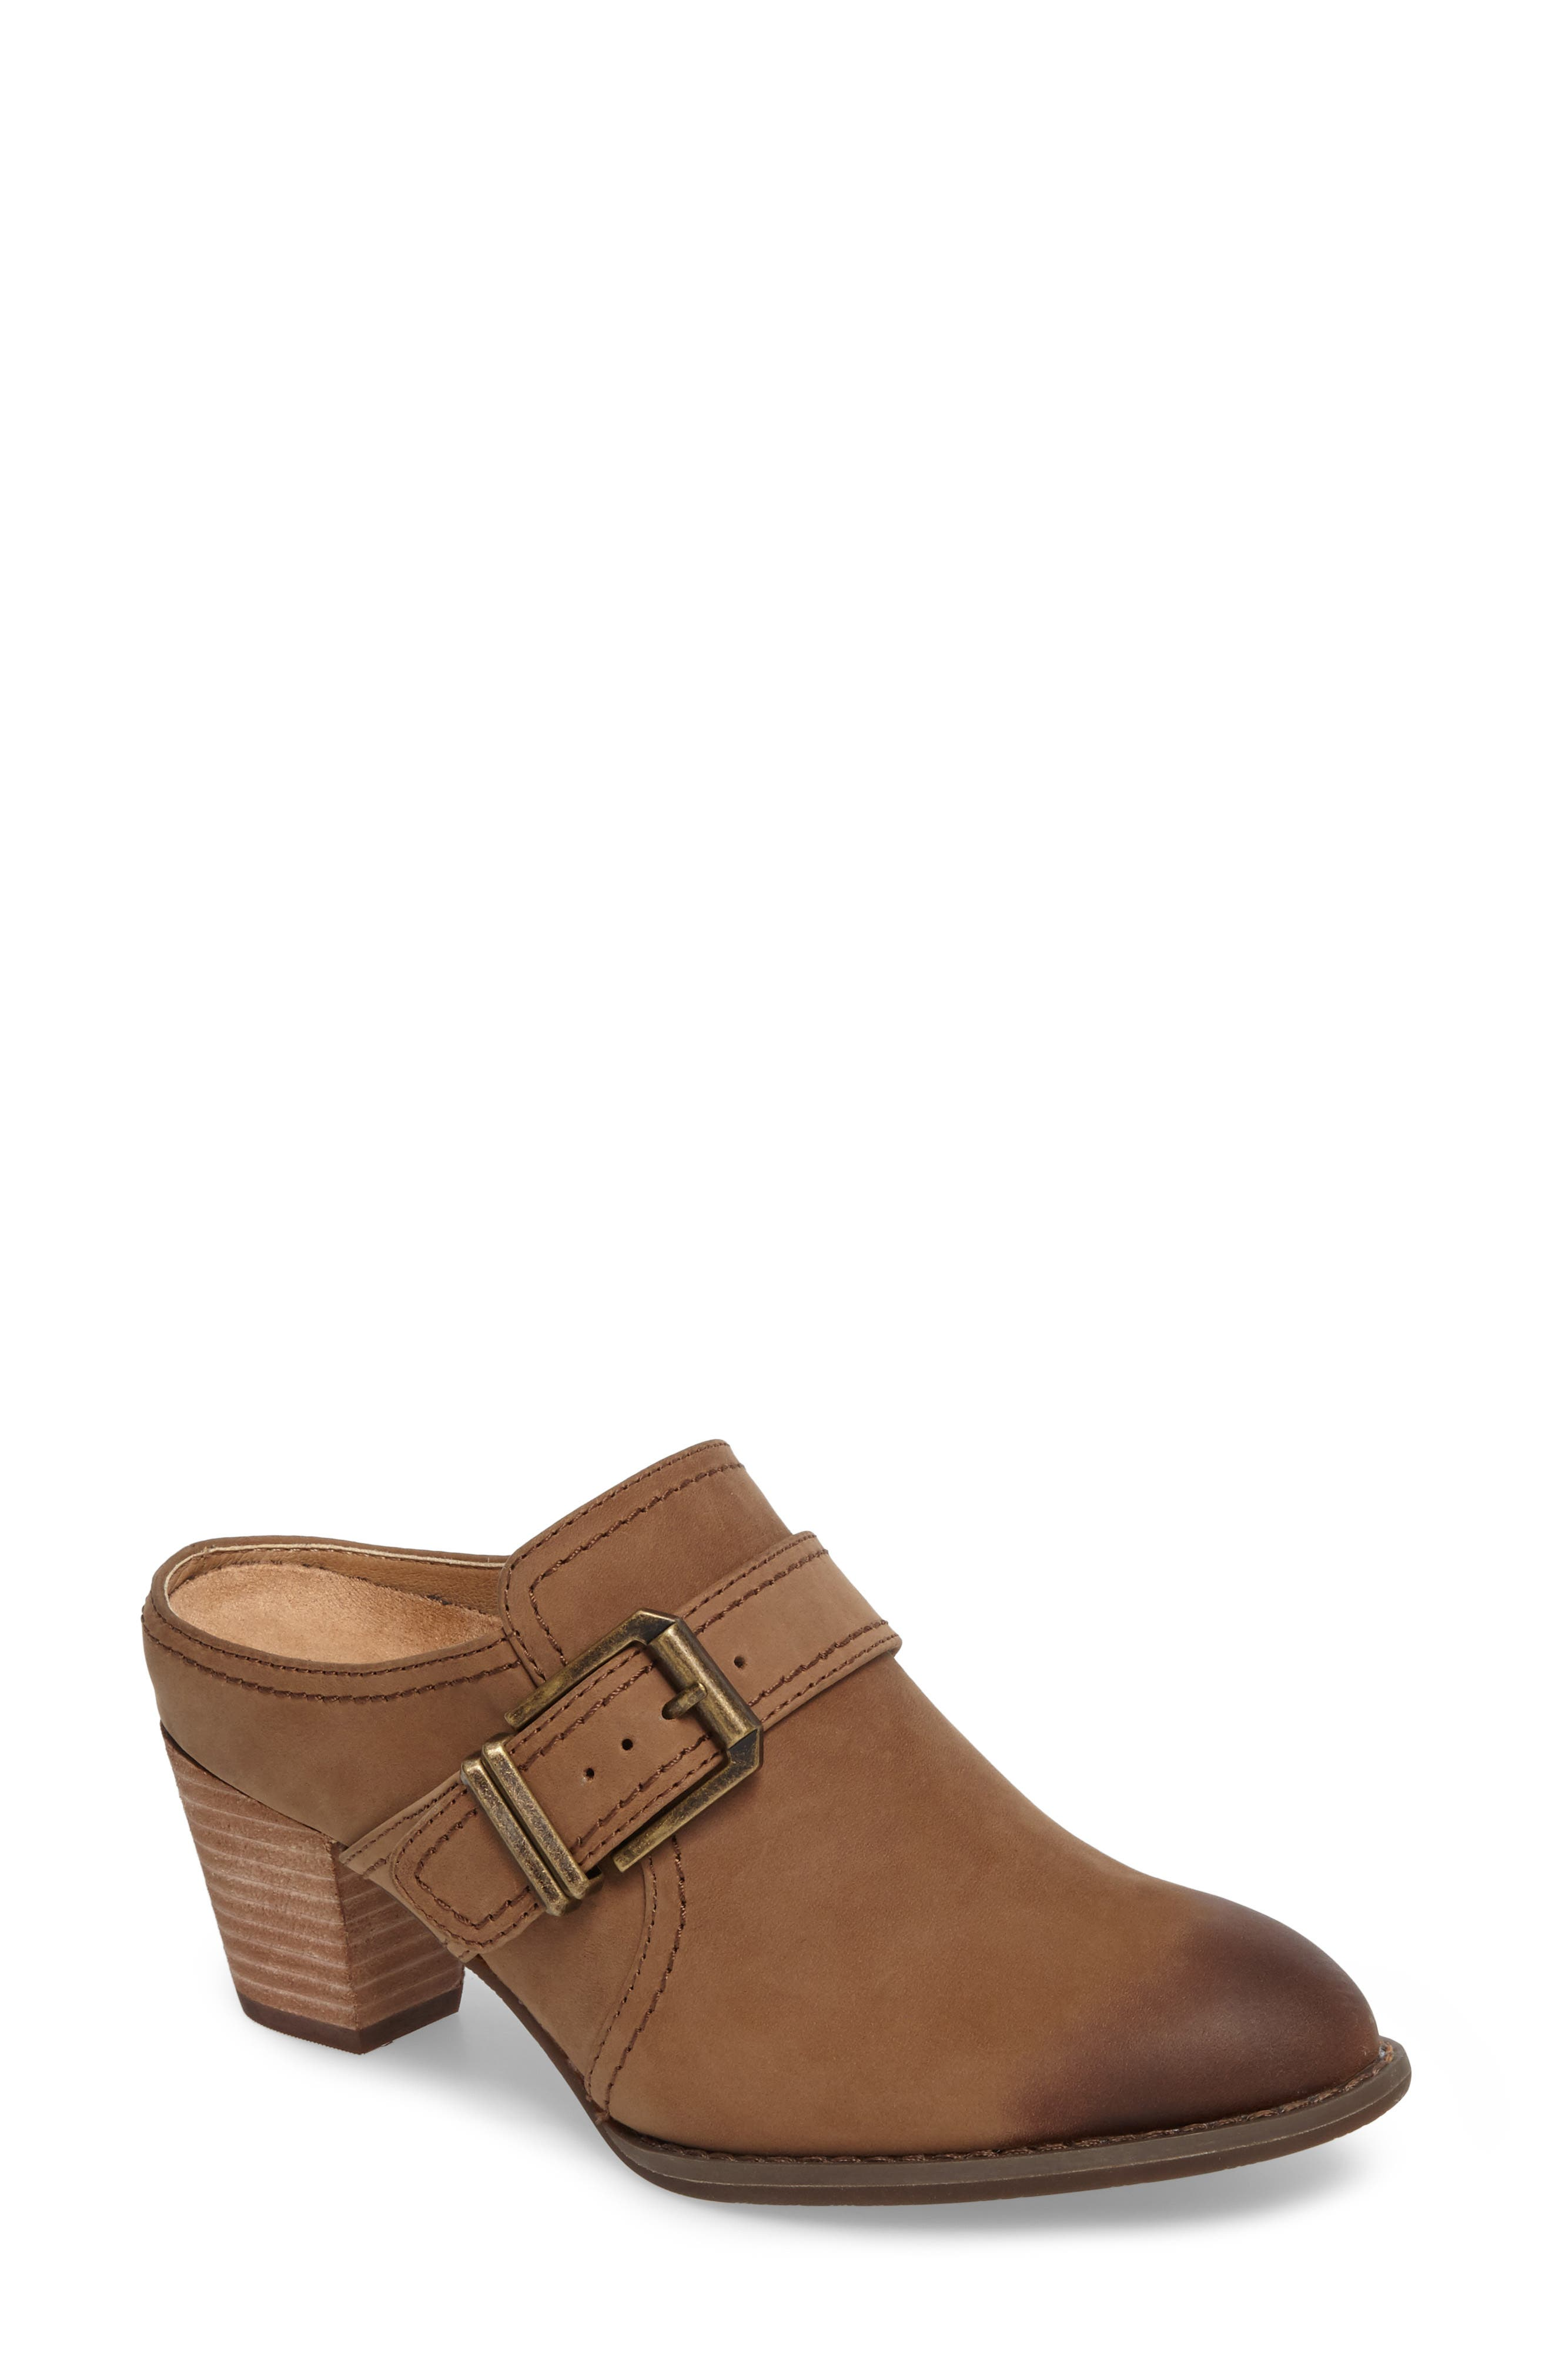 Cheyenne Mule,                         Main,                         color, Brown Leather